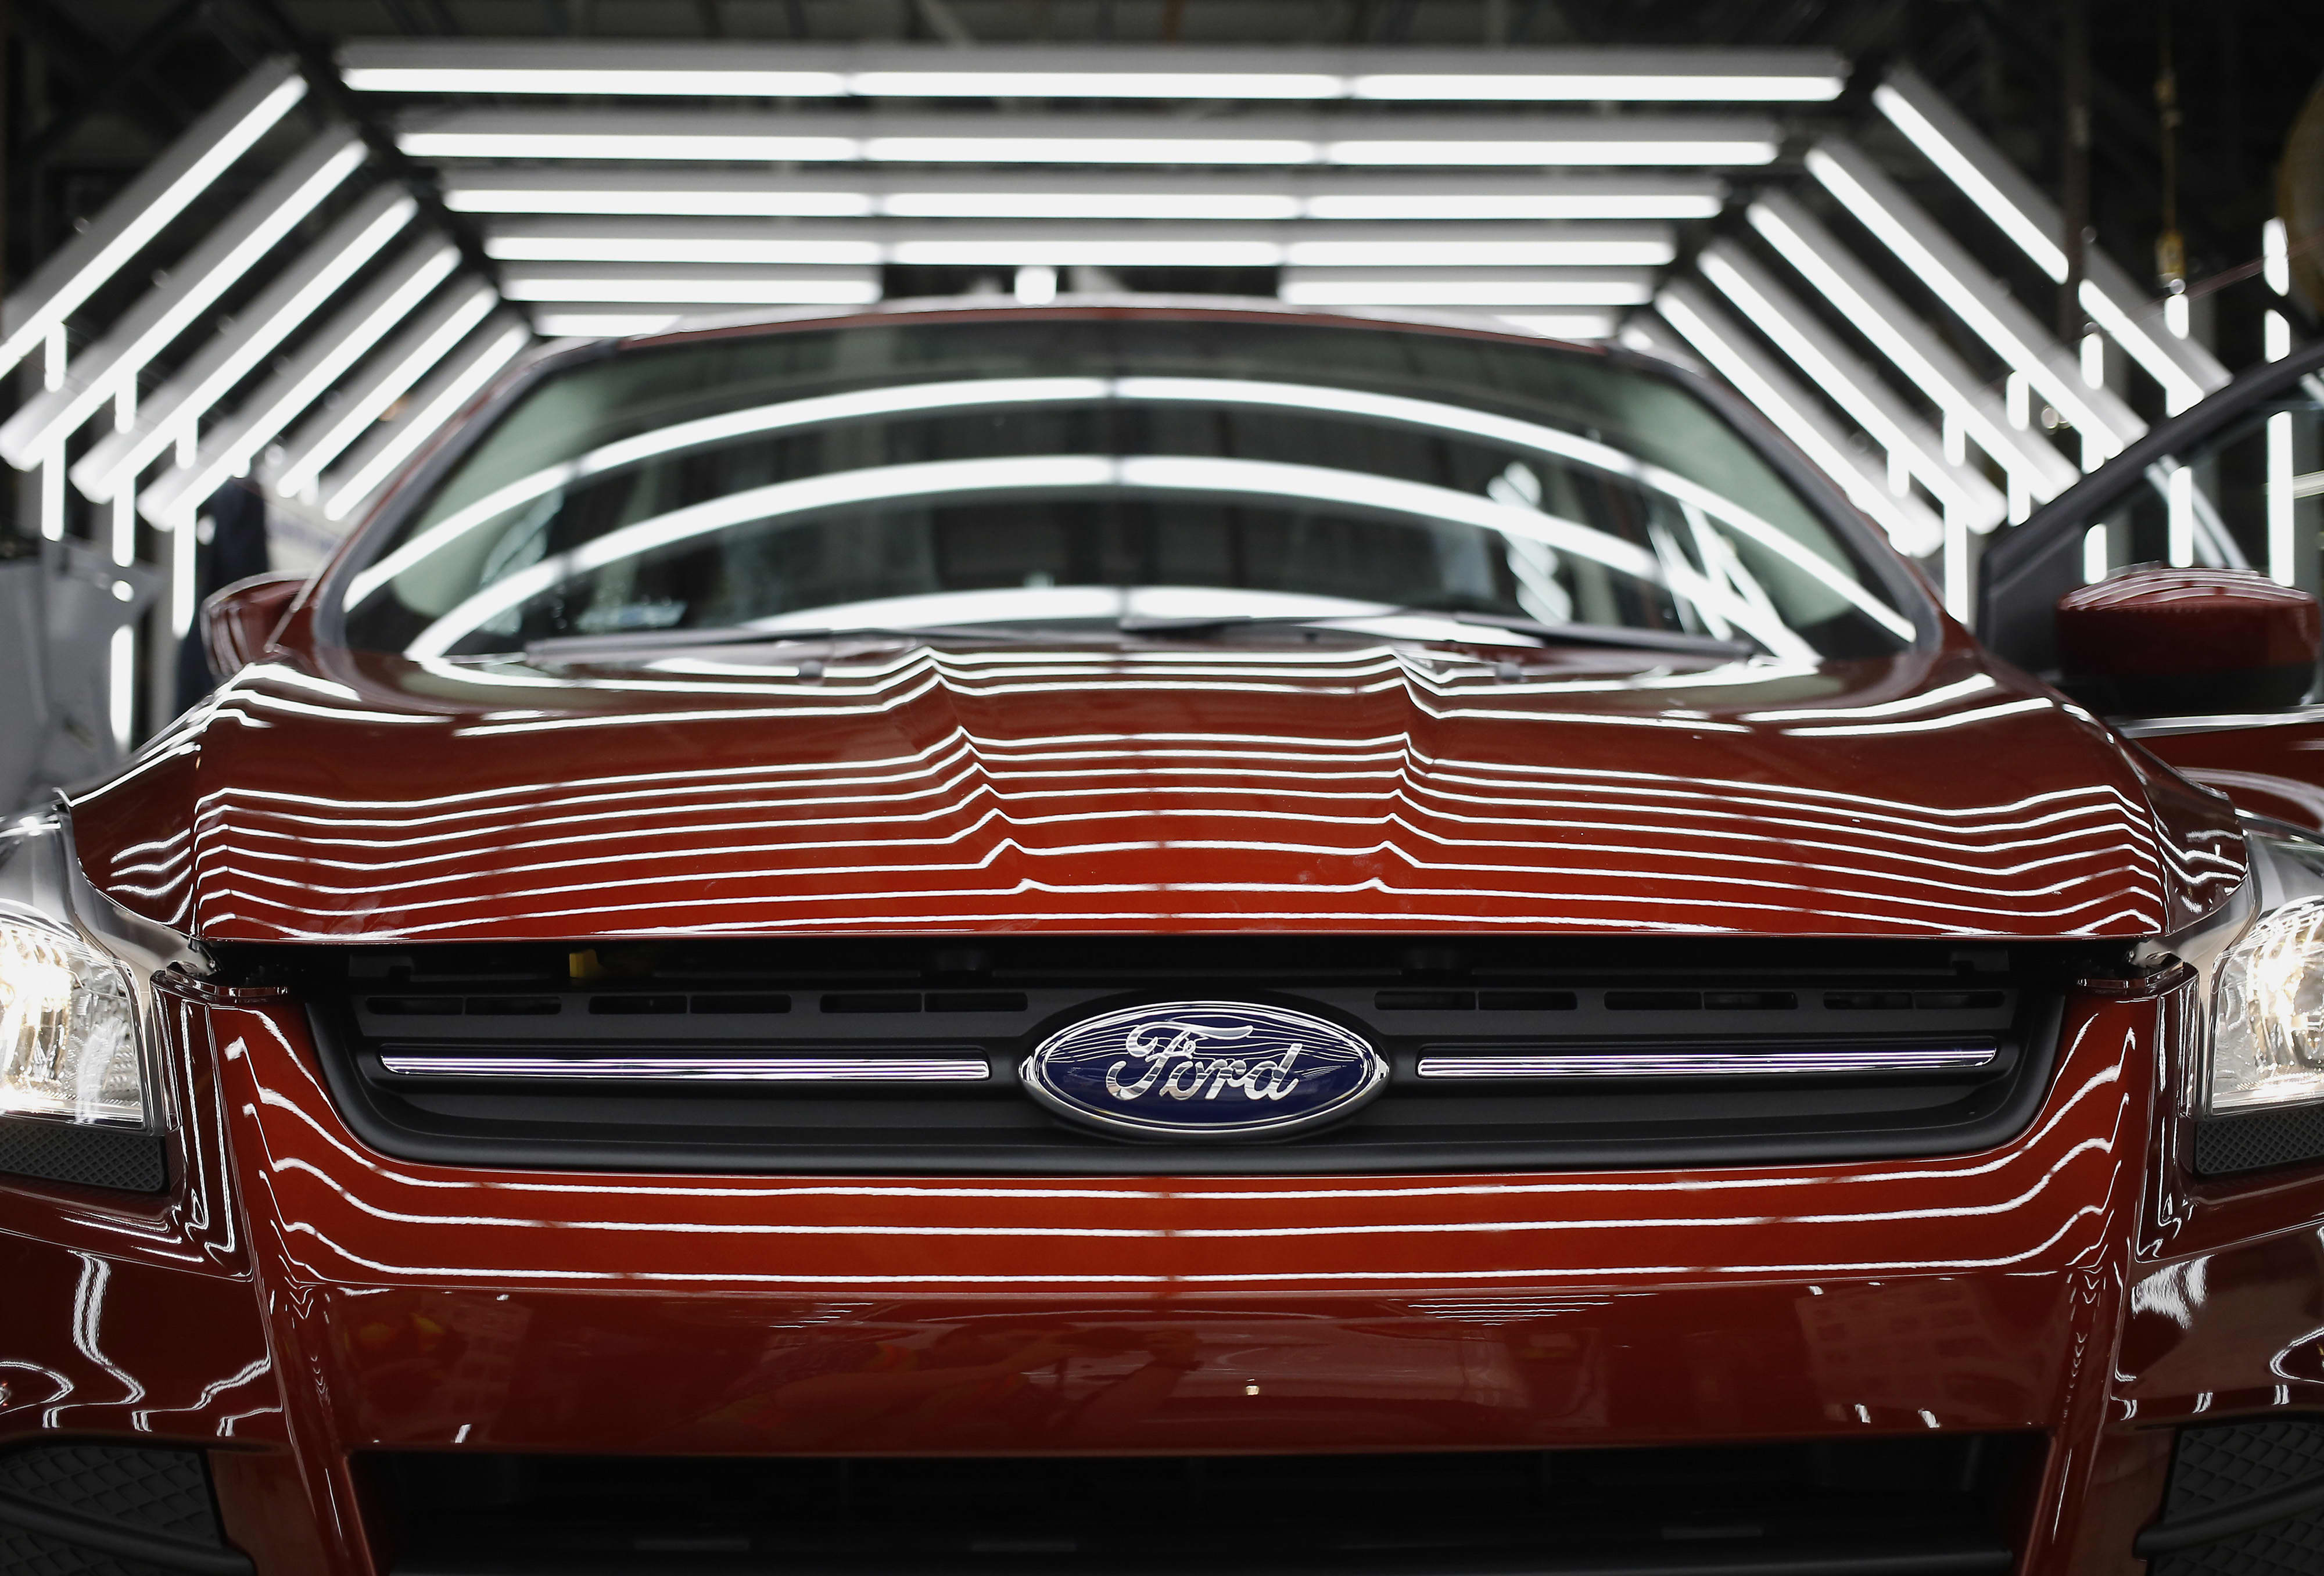 Global semiconductor shortage causes Ford and Nissan to cut vehicle production